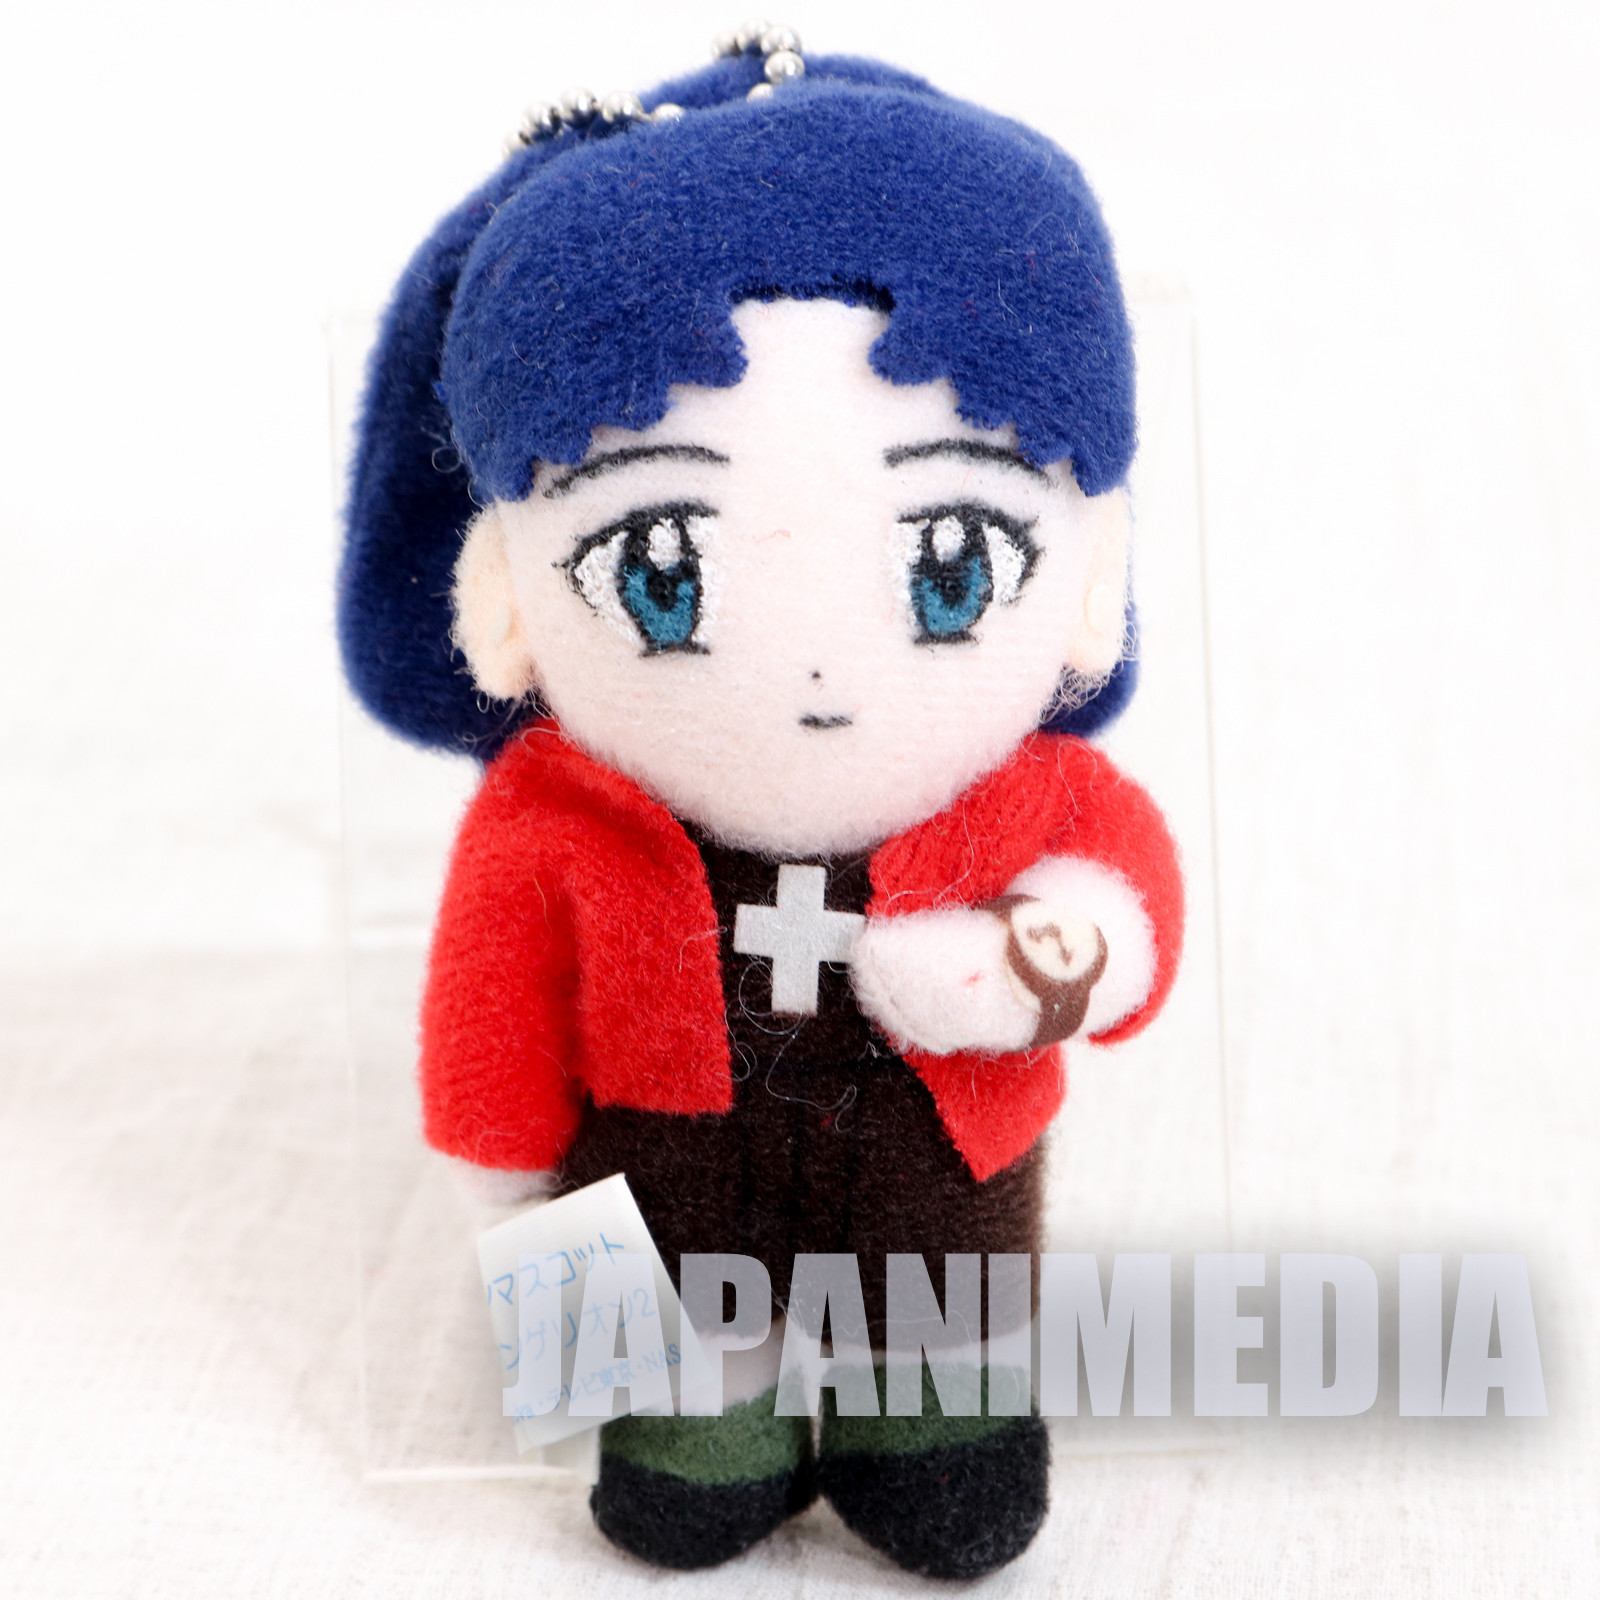 Evangelion Misato Katsuragi Mini Plush Doll Figure Ball chain SEGA JAPAN